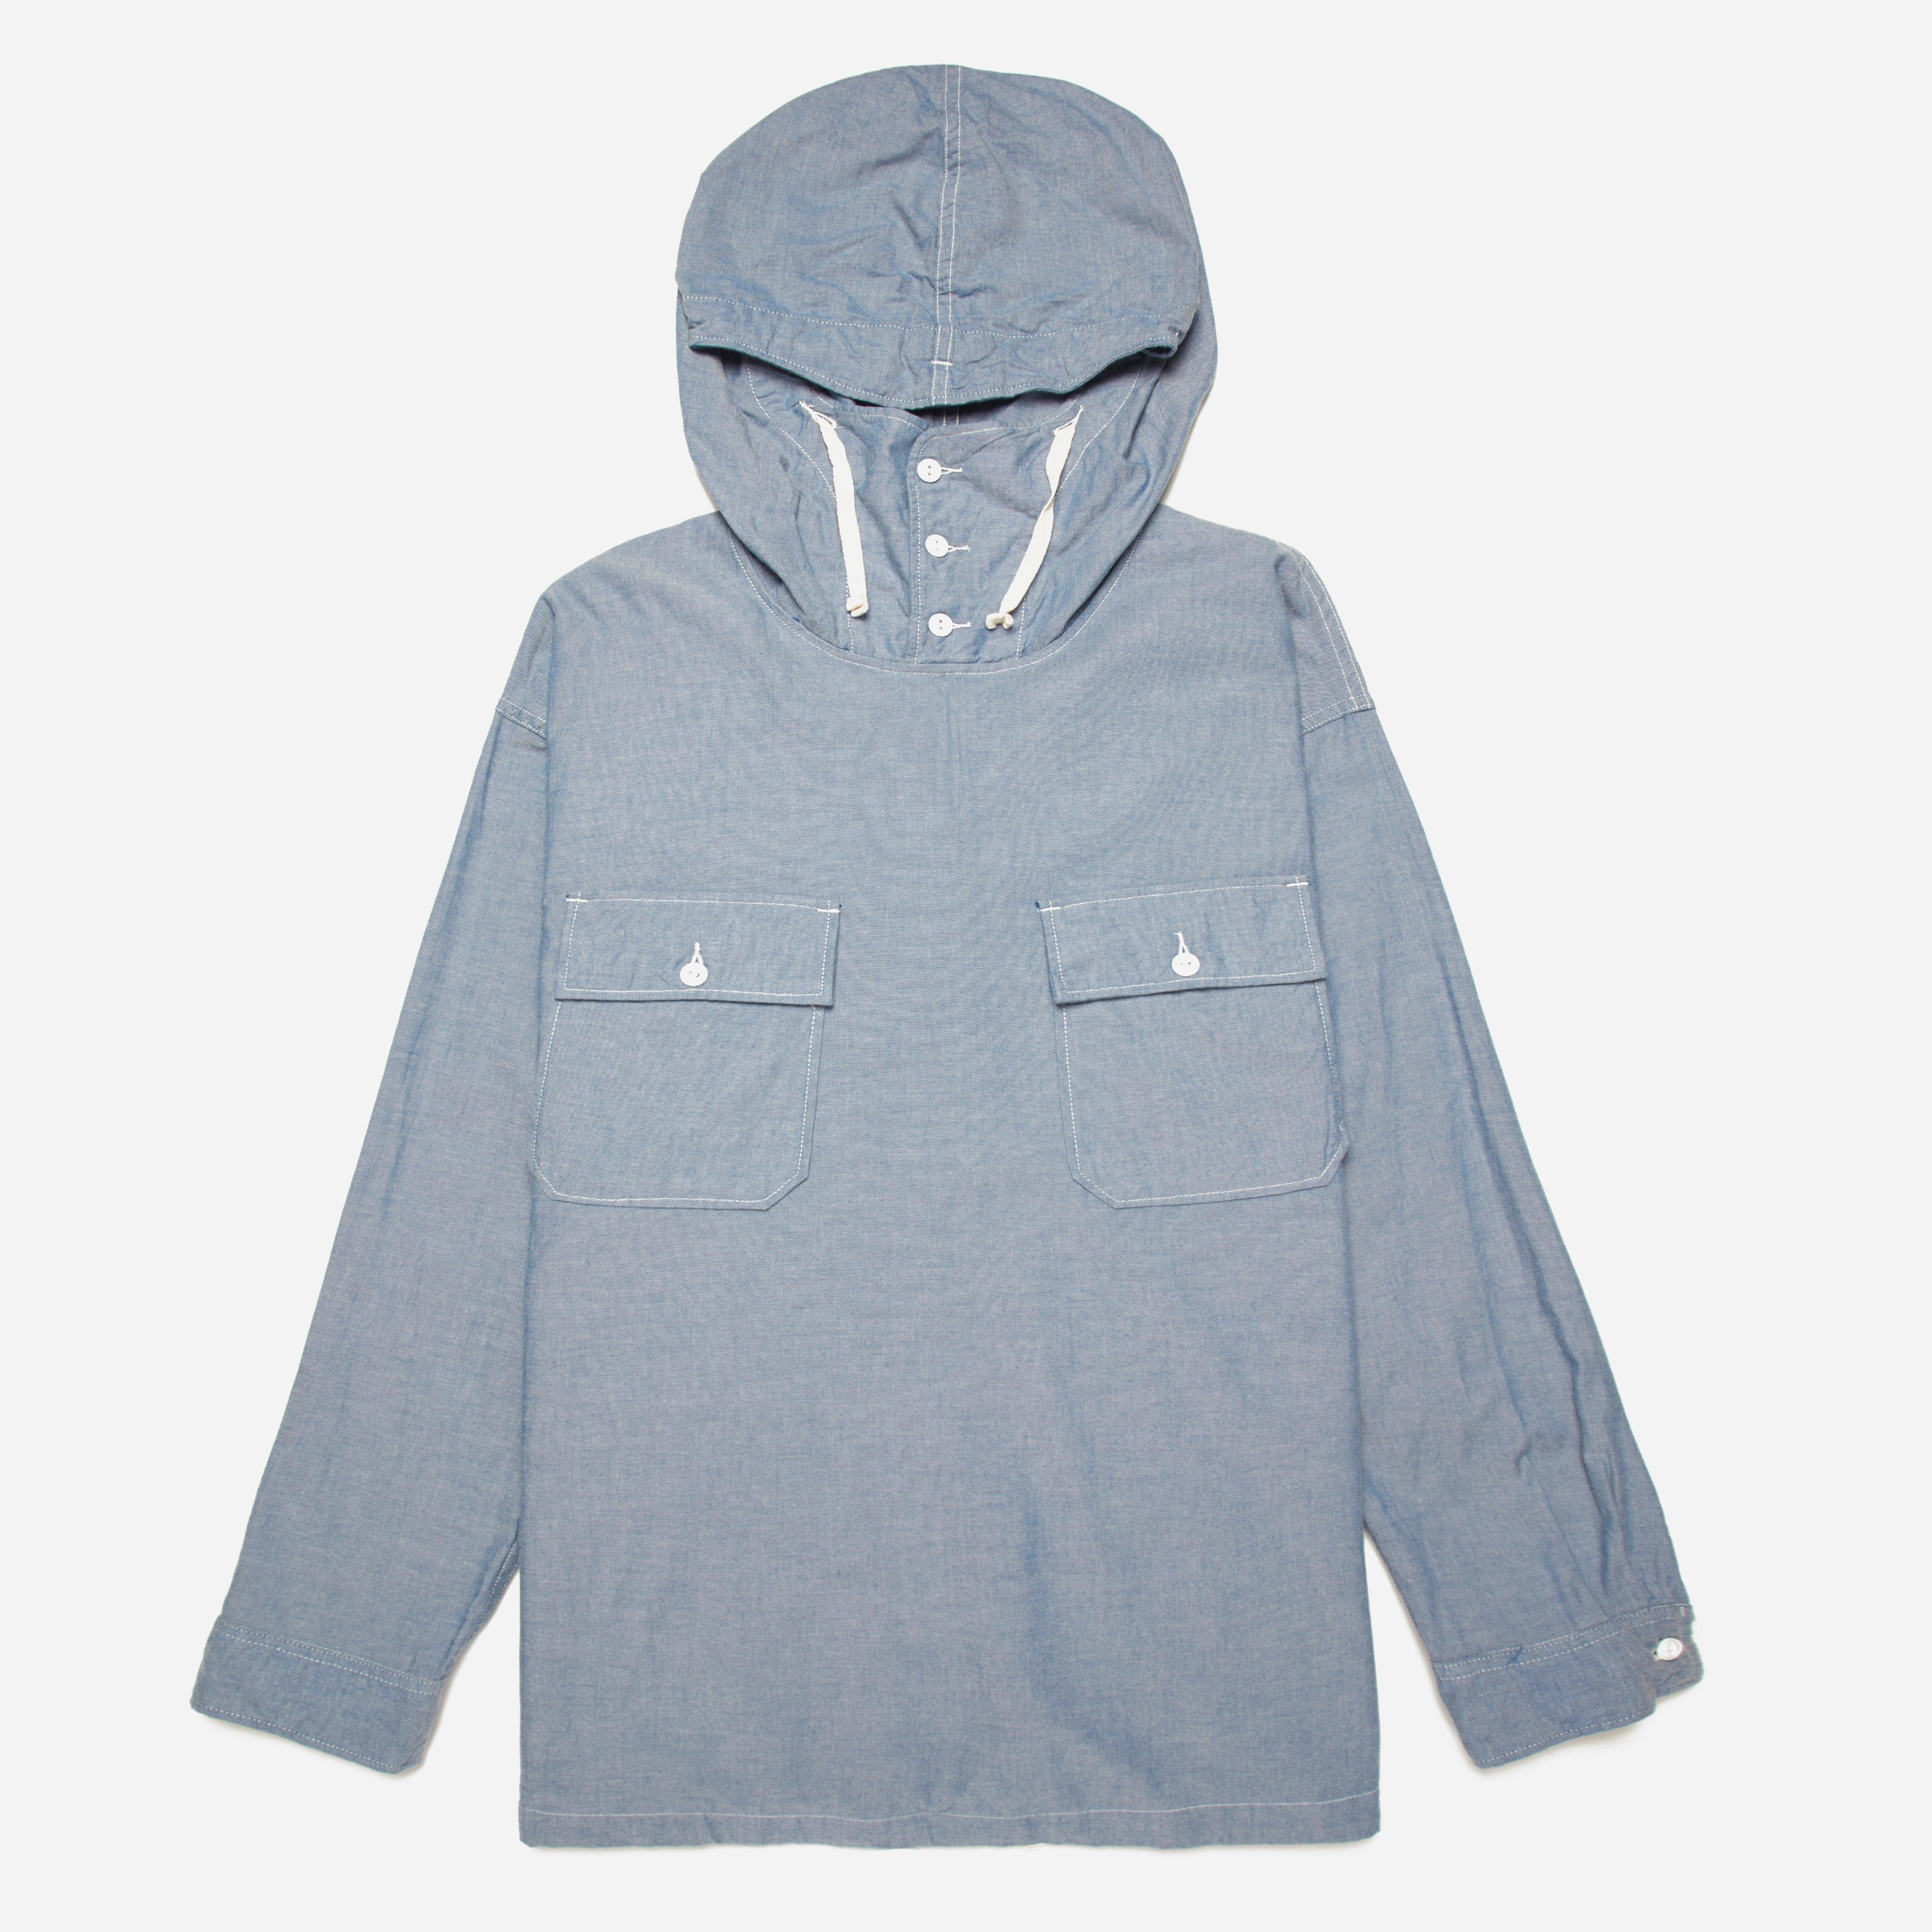 Engineered Garments Cagoule Shirt - Cotton Chambray